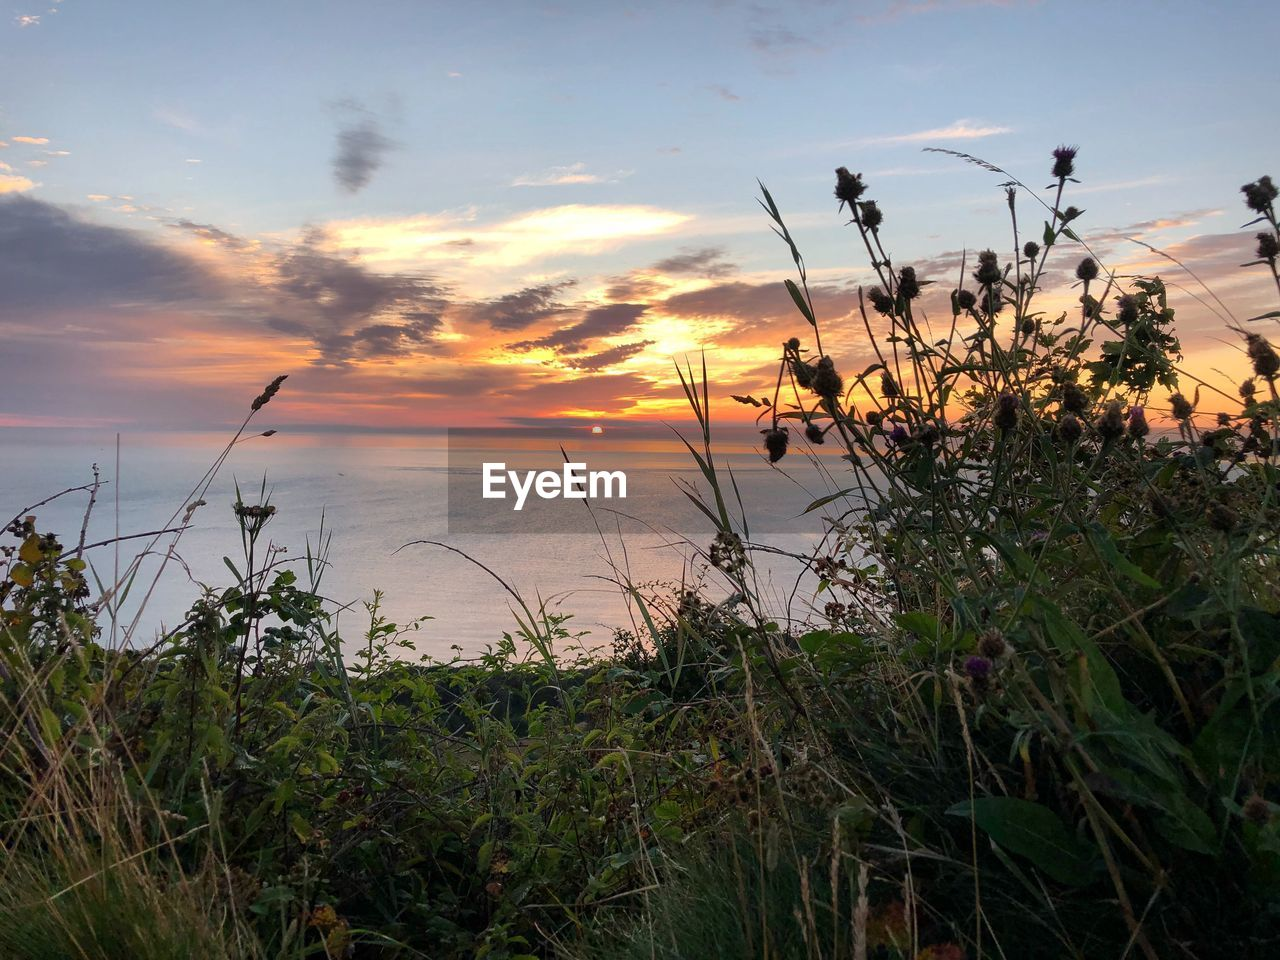 sky, sunset, plant, beauty in nature, cloud - sky, water, tranquility, growth, sea, tranquil scene, scenics - nature, nature, horizon over water, horizon, land, no people, orange color, beach, grass, outdoors, timothy grass